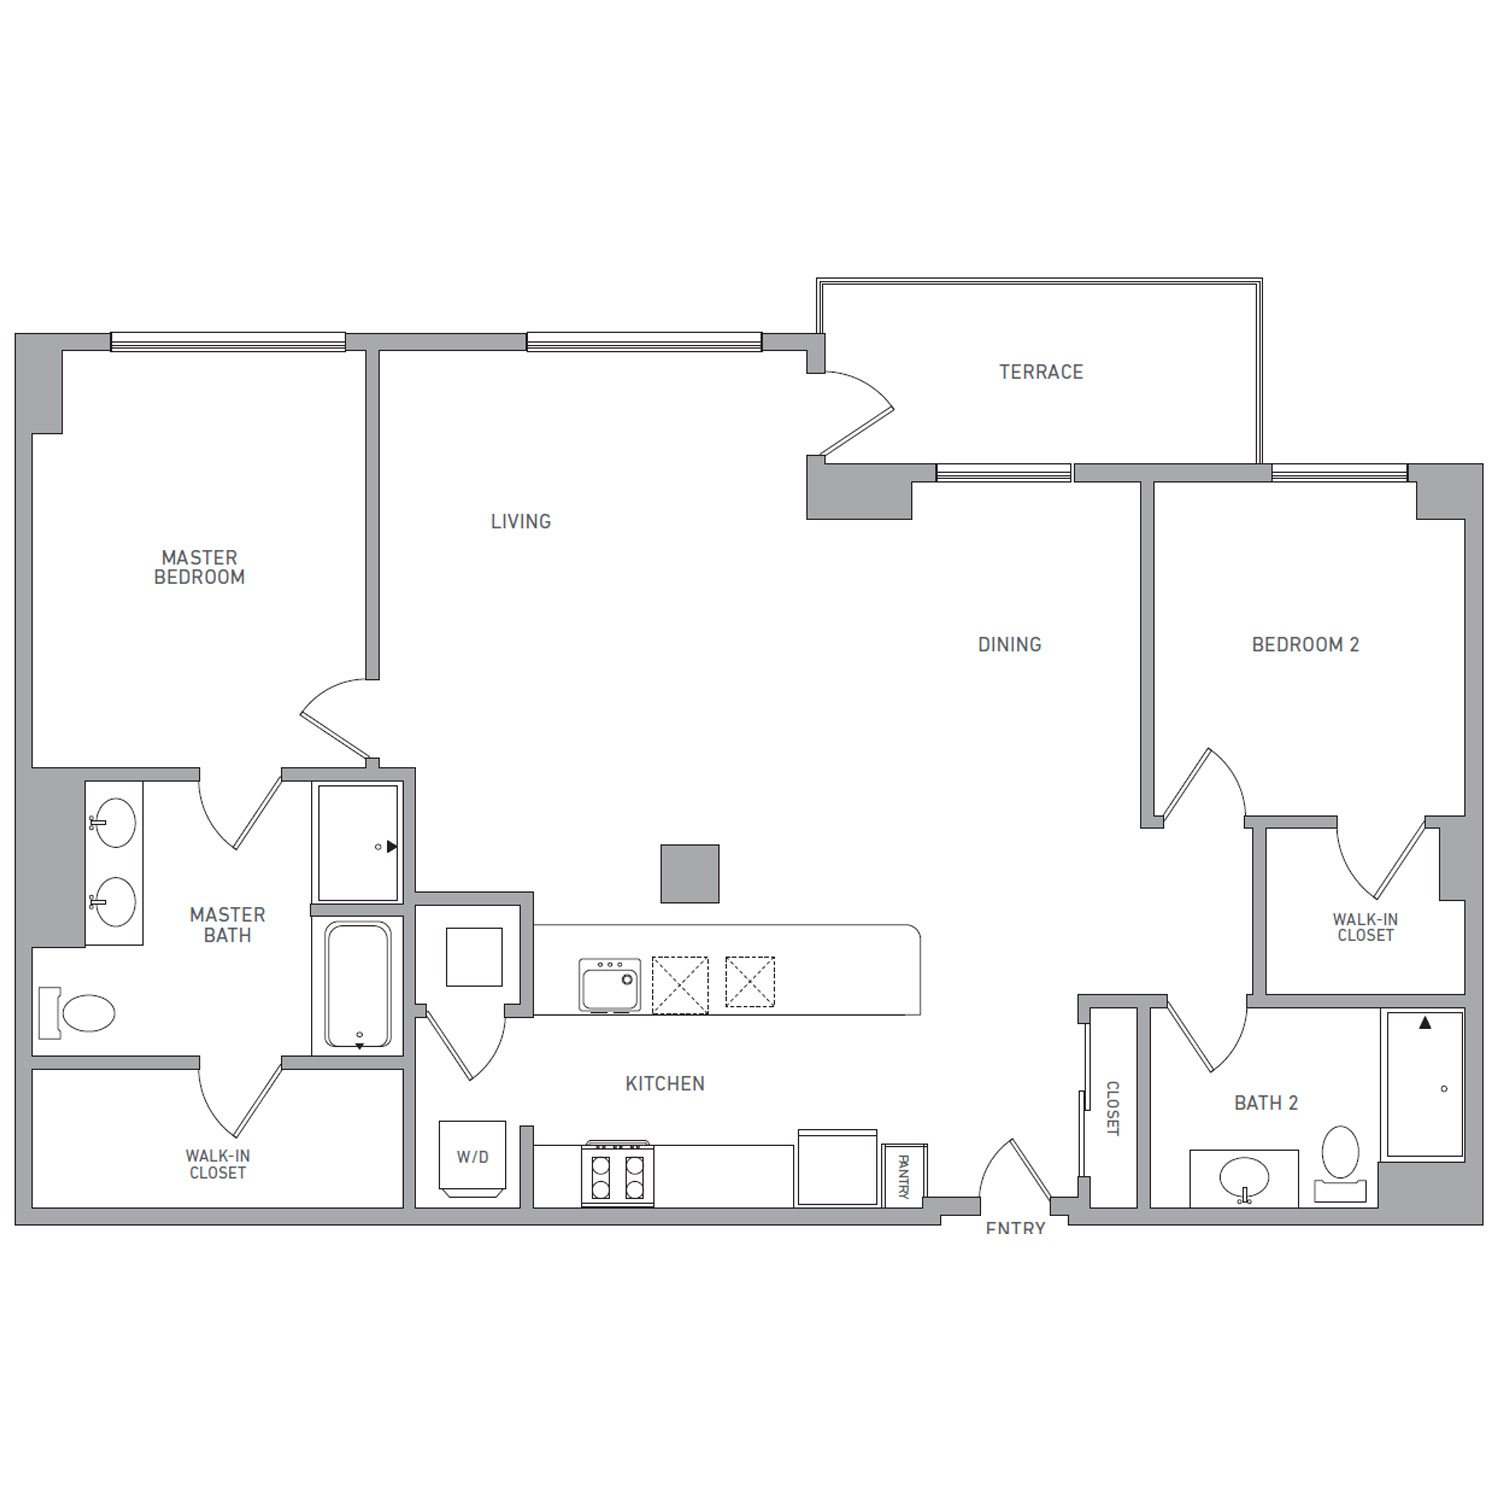 P H 203 floor plan diagram. Penthouse apartment with two bedrooms, two bathrooms, an open kitchen dining and living area, a terrace, and a washer dryer.